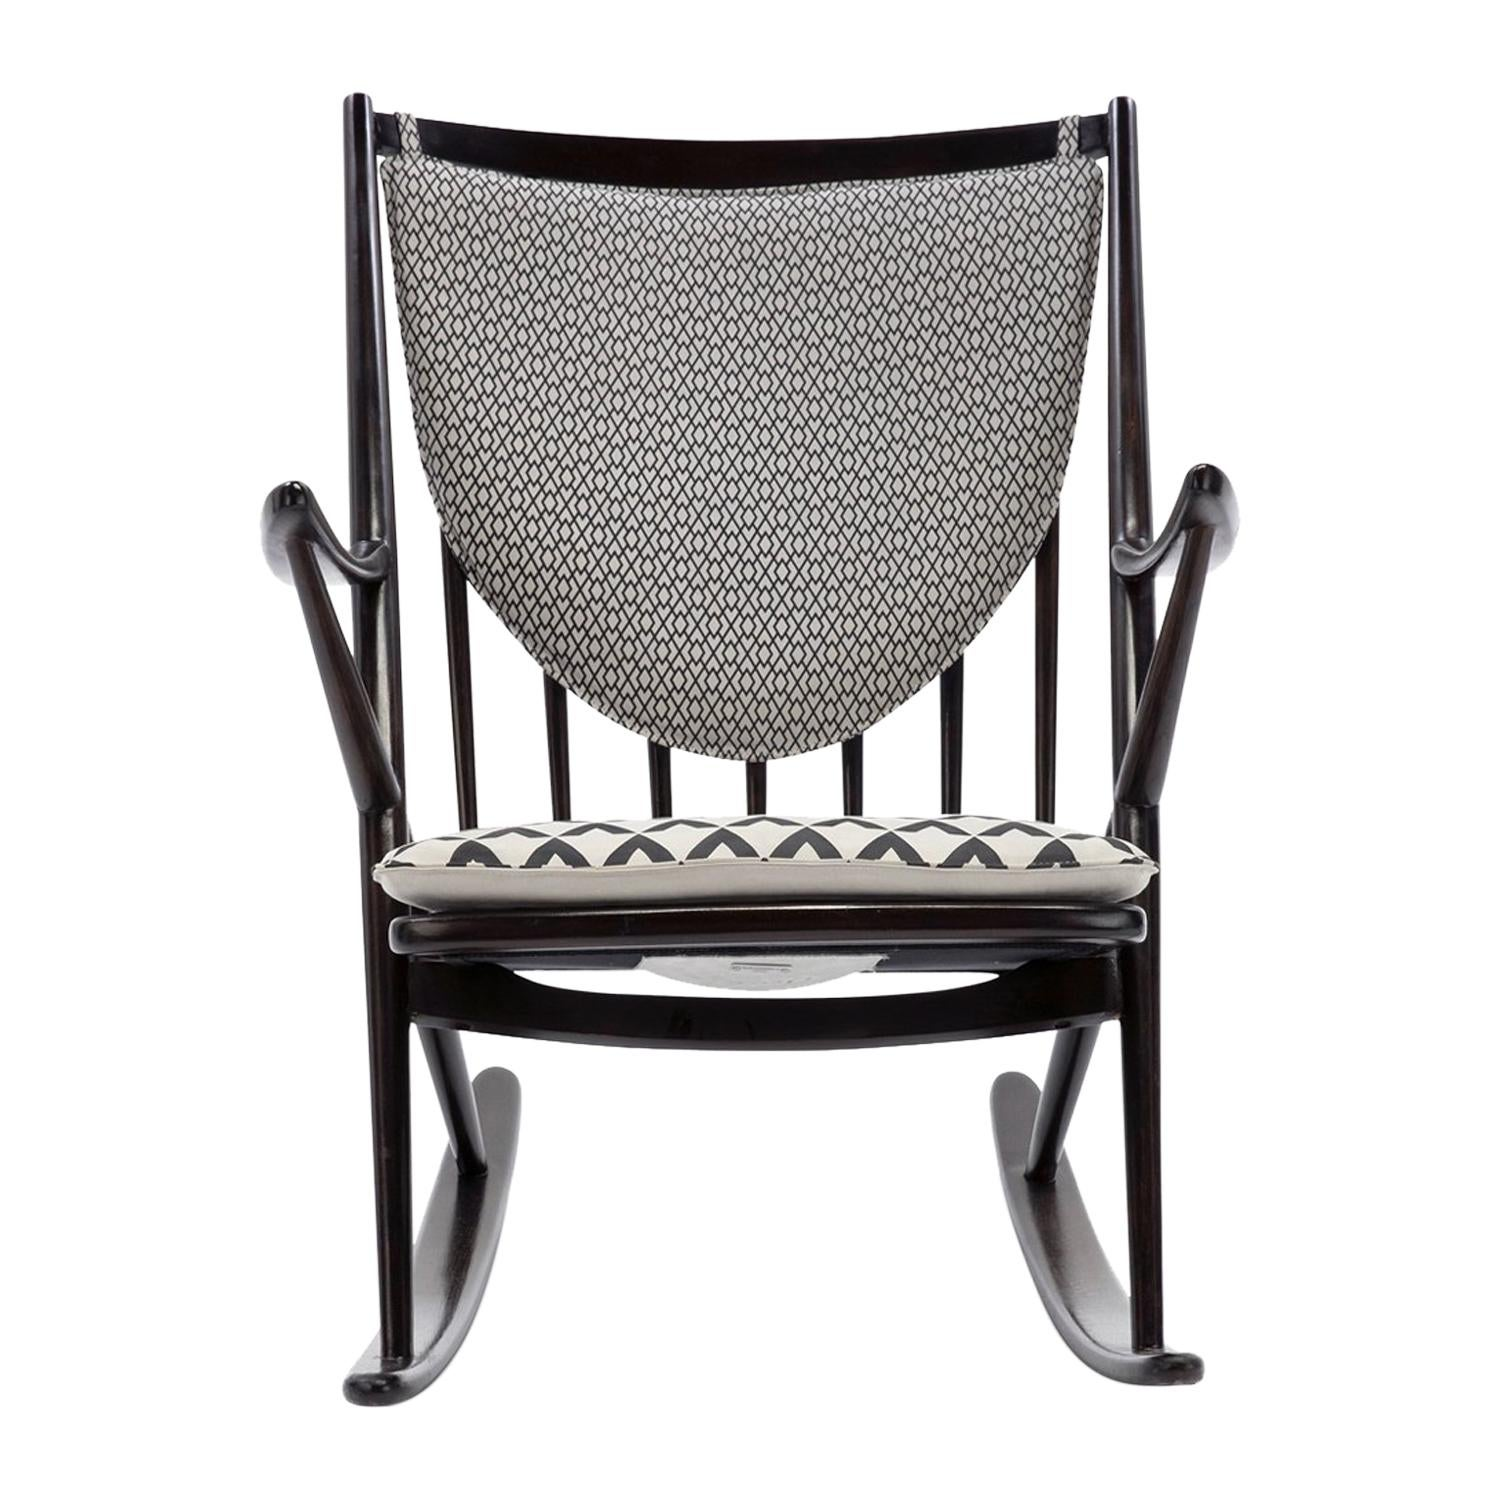 Baxter Rocking Armchair No. 1 in Rosewood and White Leather by Draga & Aurel